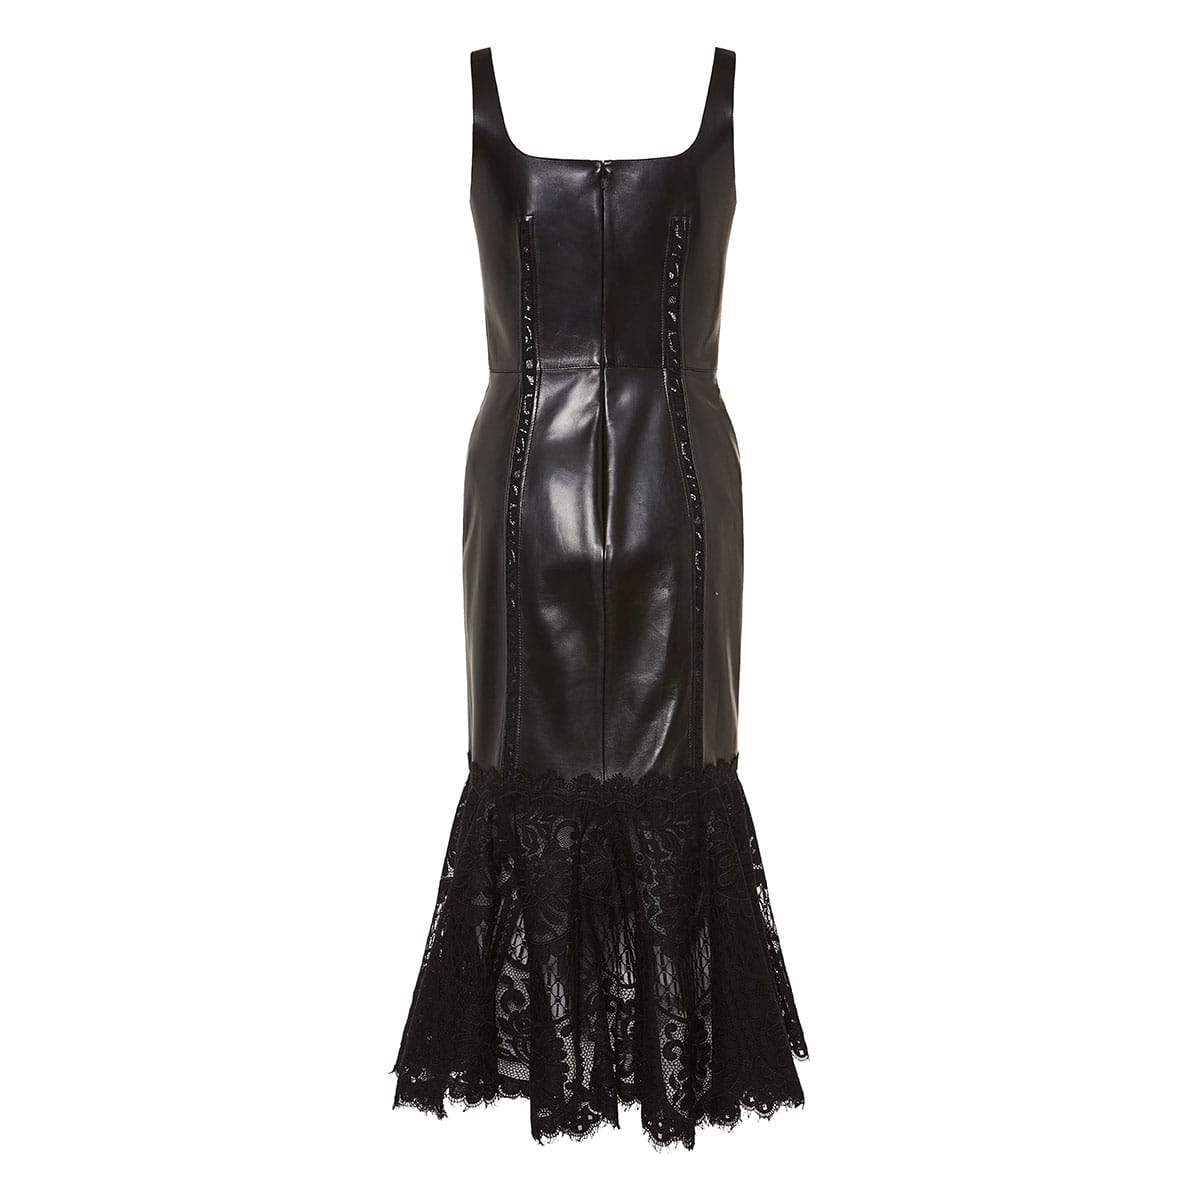 Lace-trimmed structured leather dress